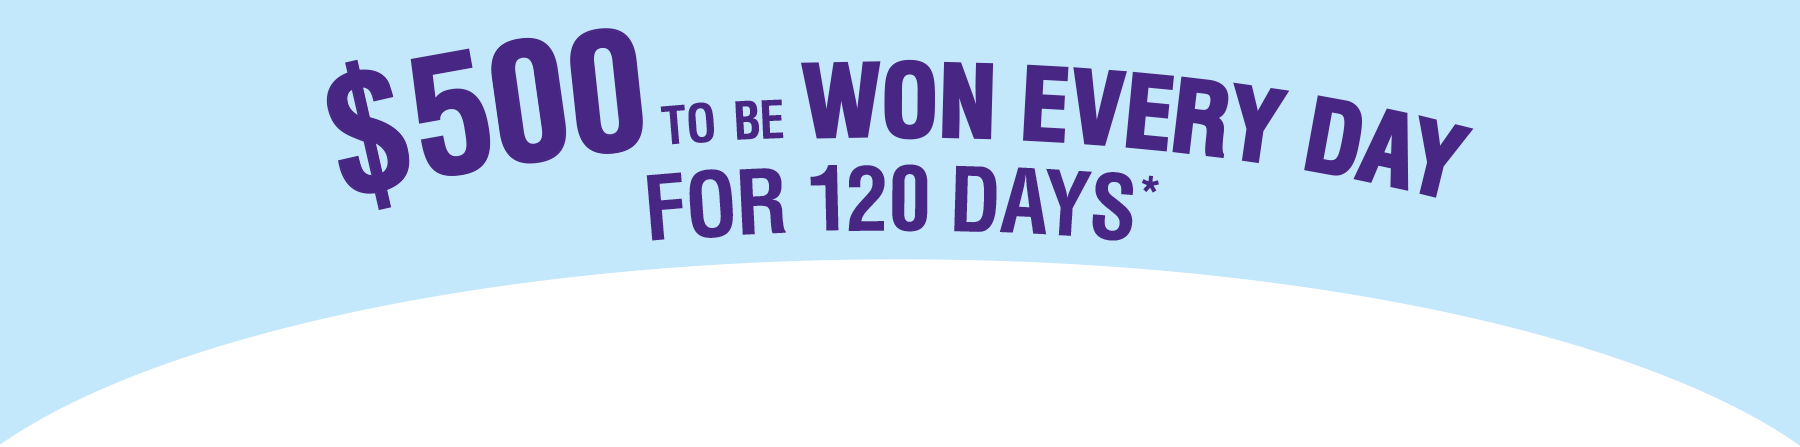 $500 to be won every day for 120 days*